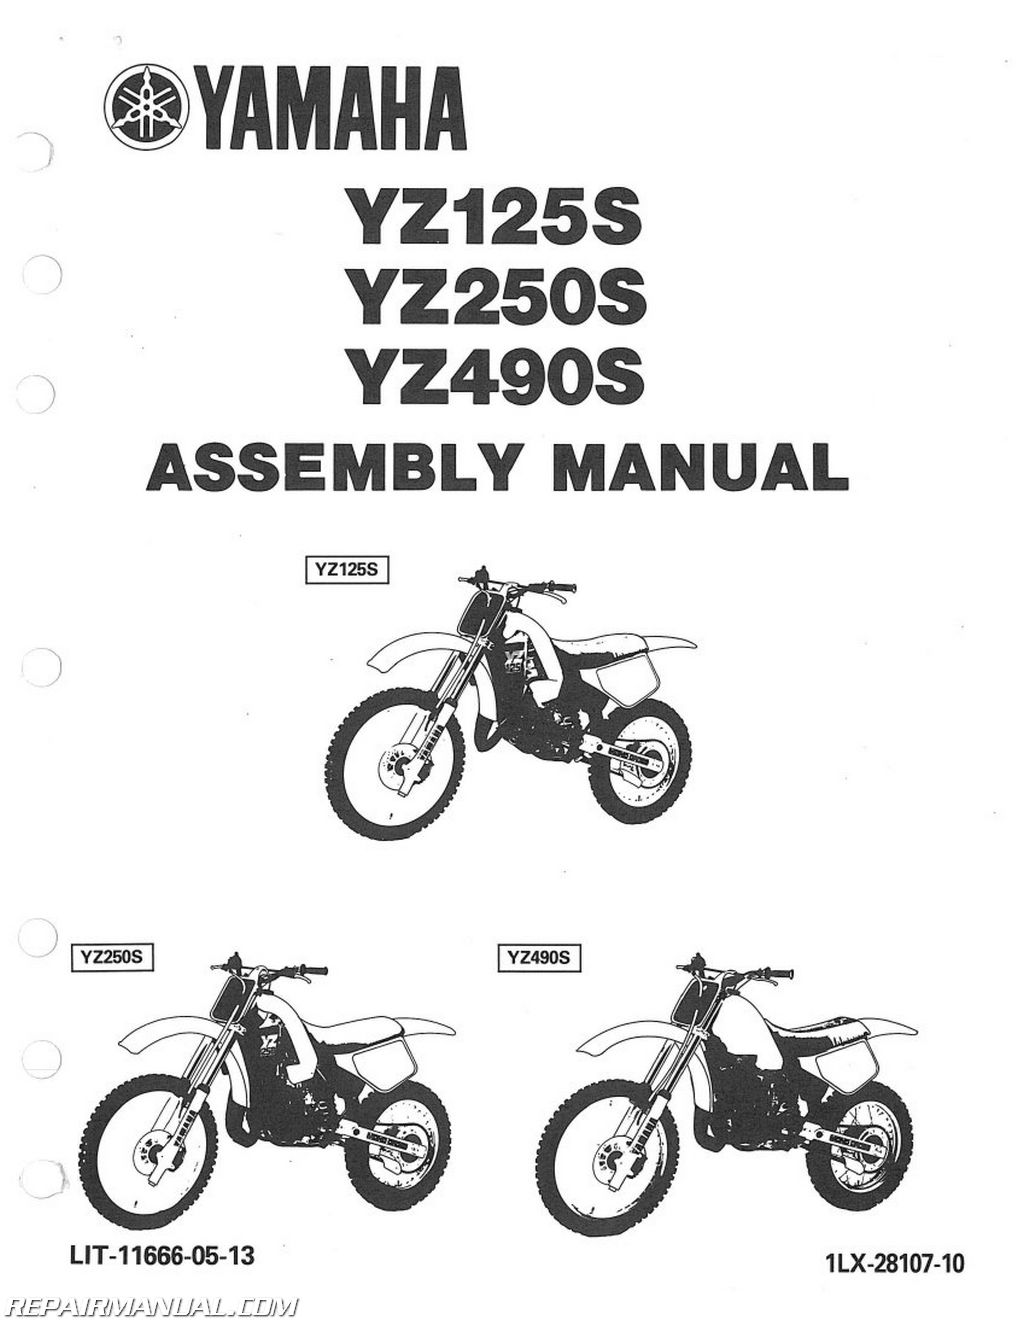 Yamaha Yz125s Yz250s Yz490s Assembly Manual